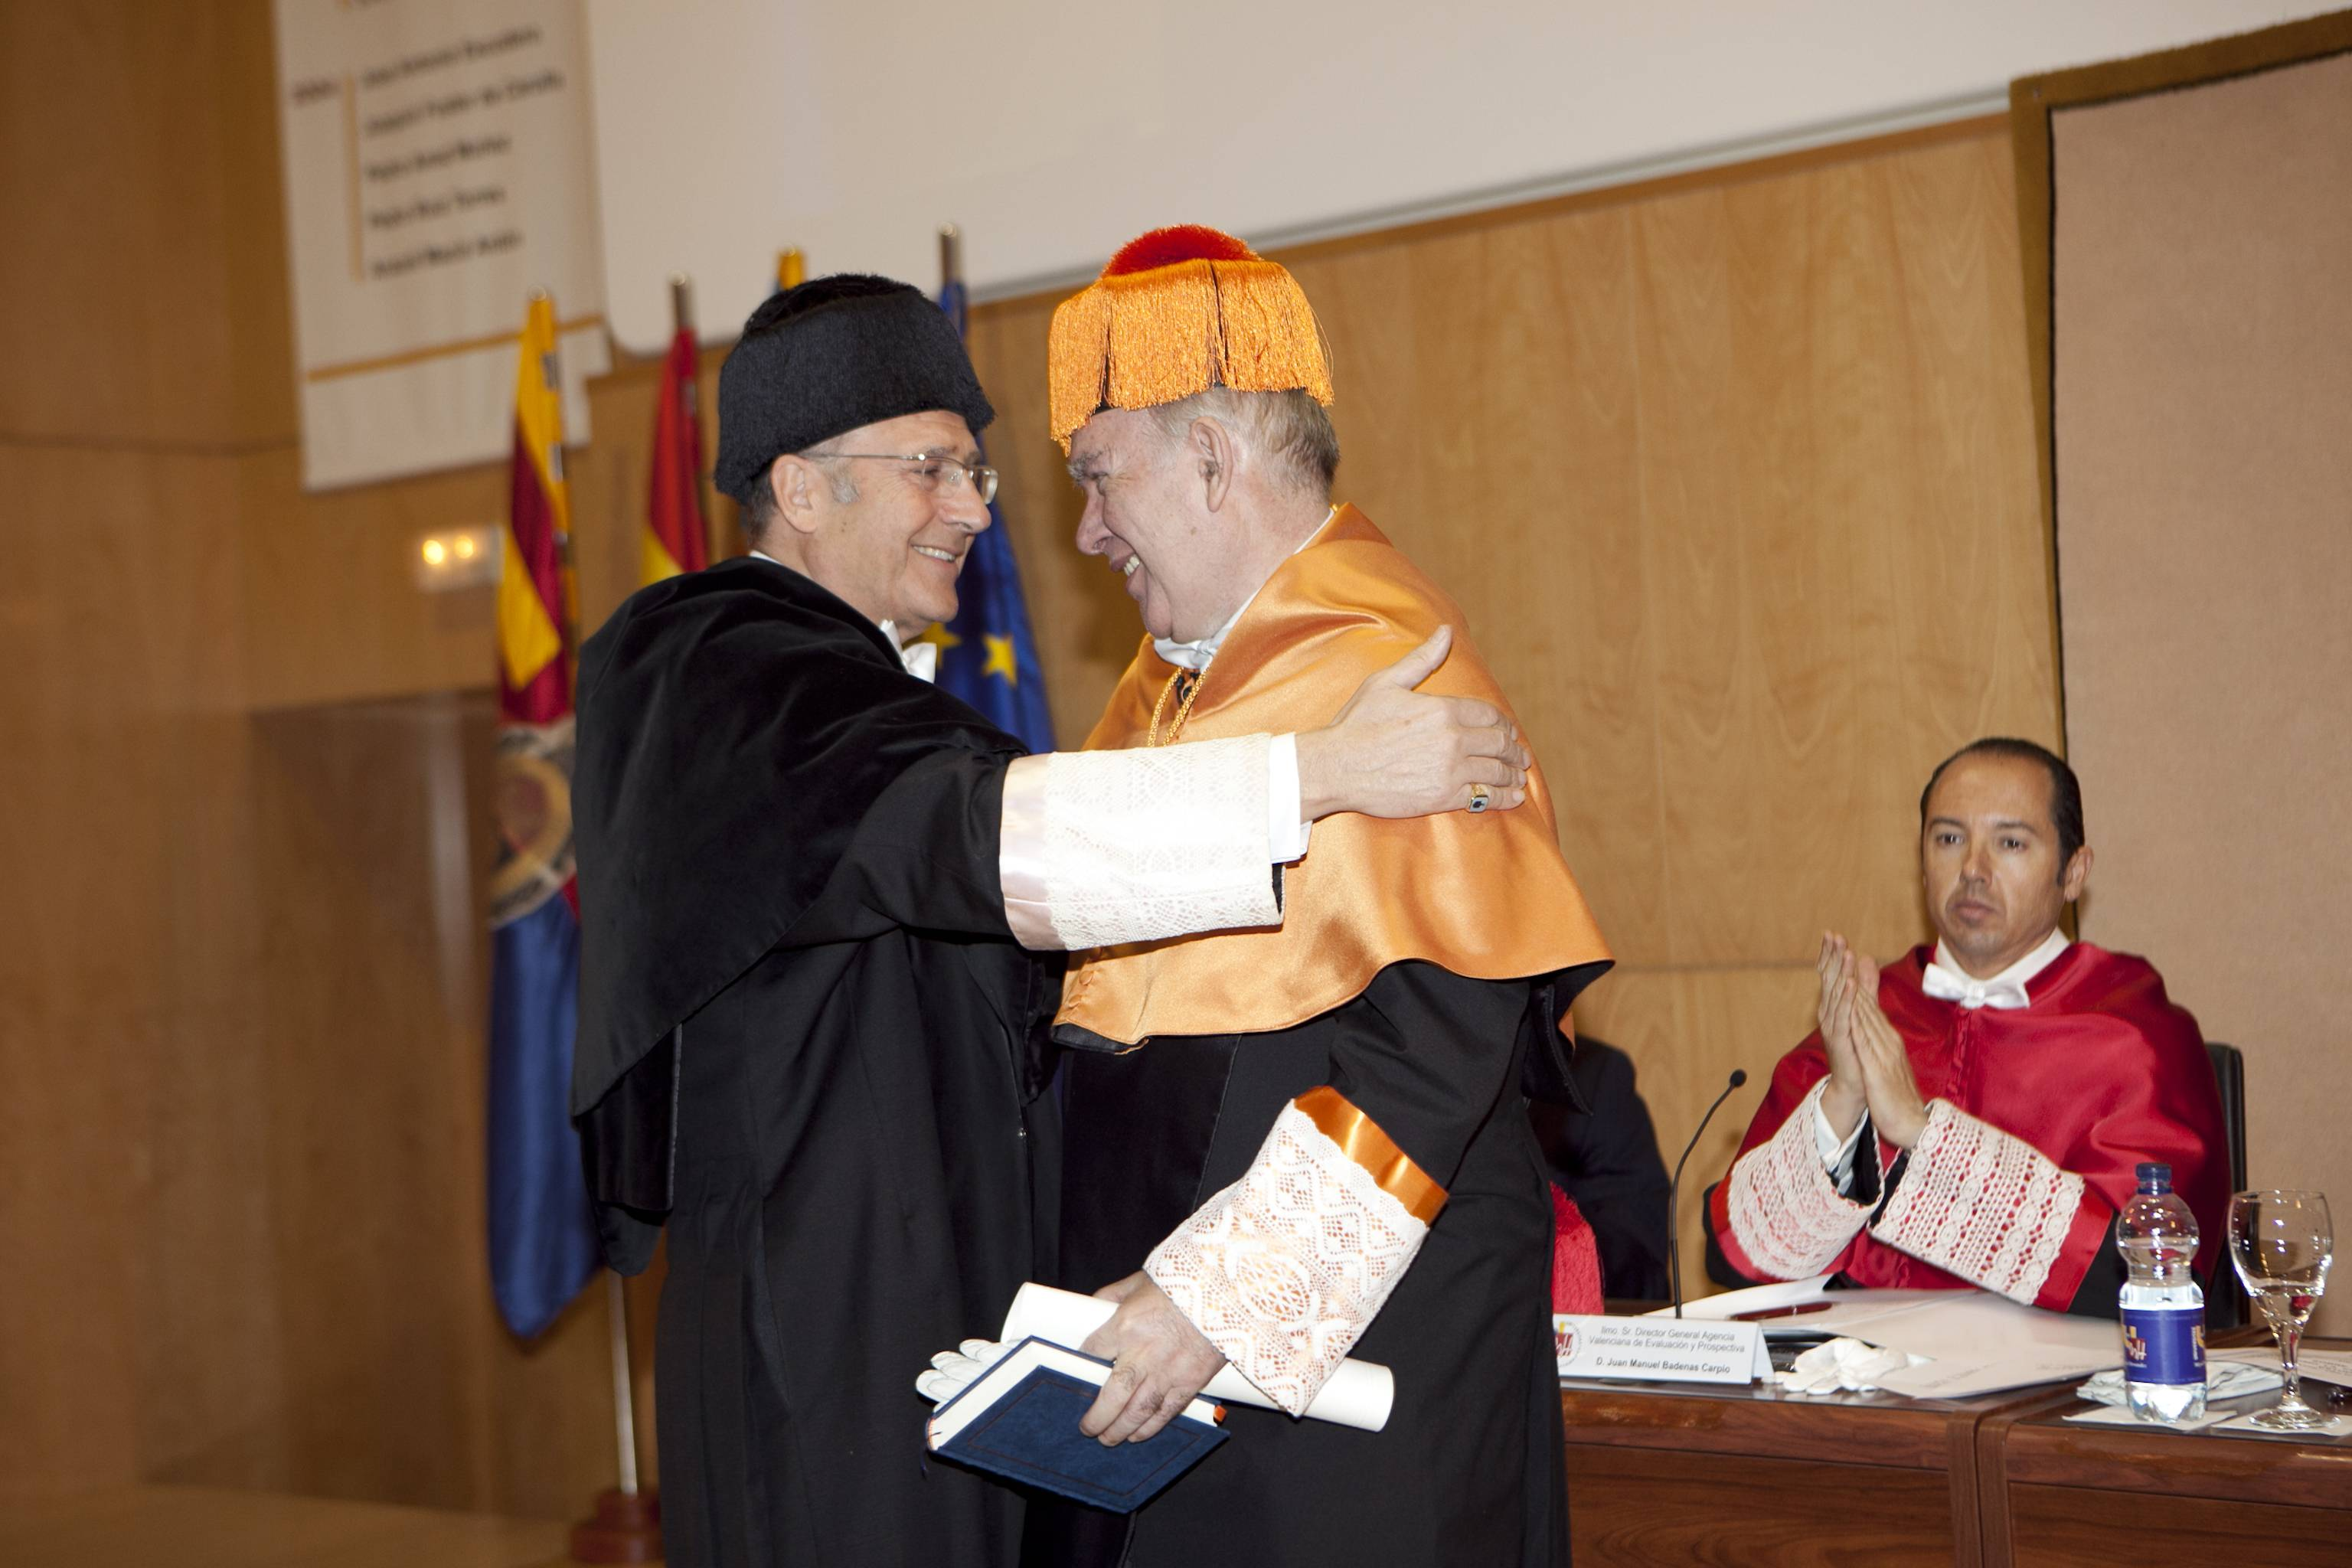 doctor-honoris-causa-luis-gamir_mg_0798.jpg